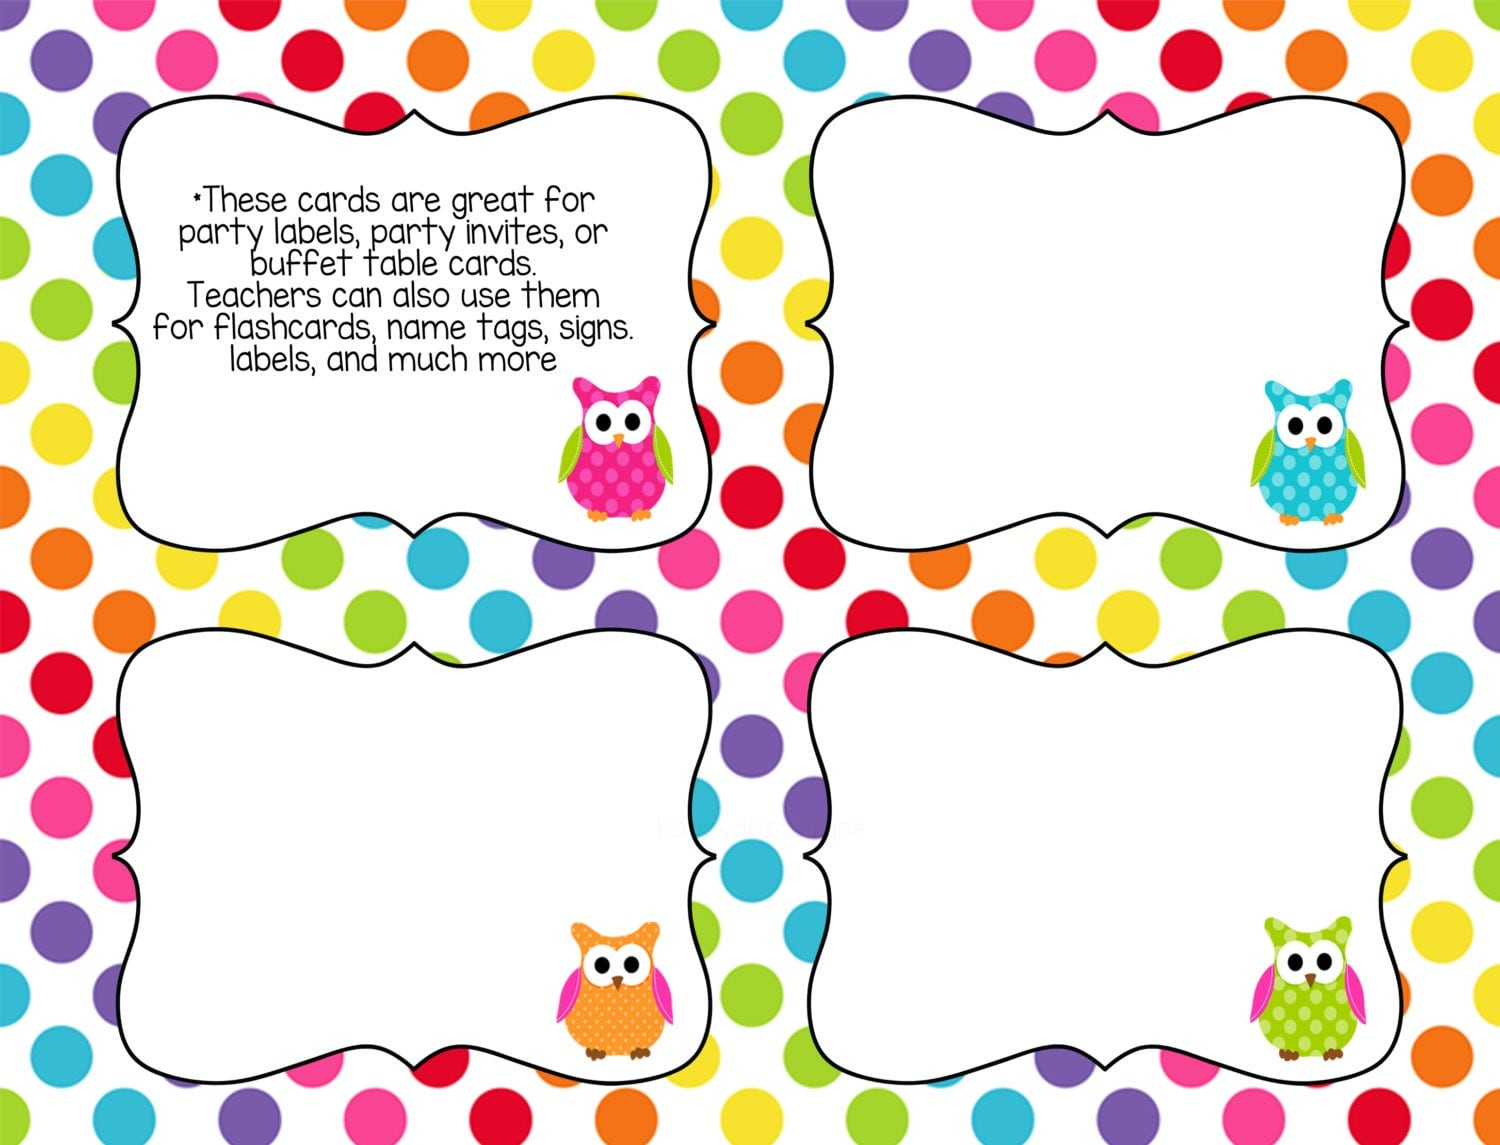 Selective image pertaining to printable task cards